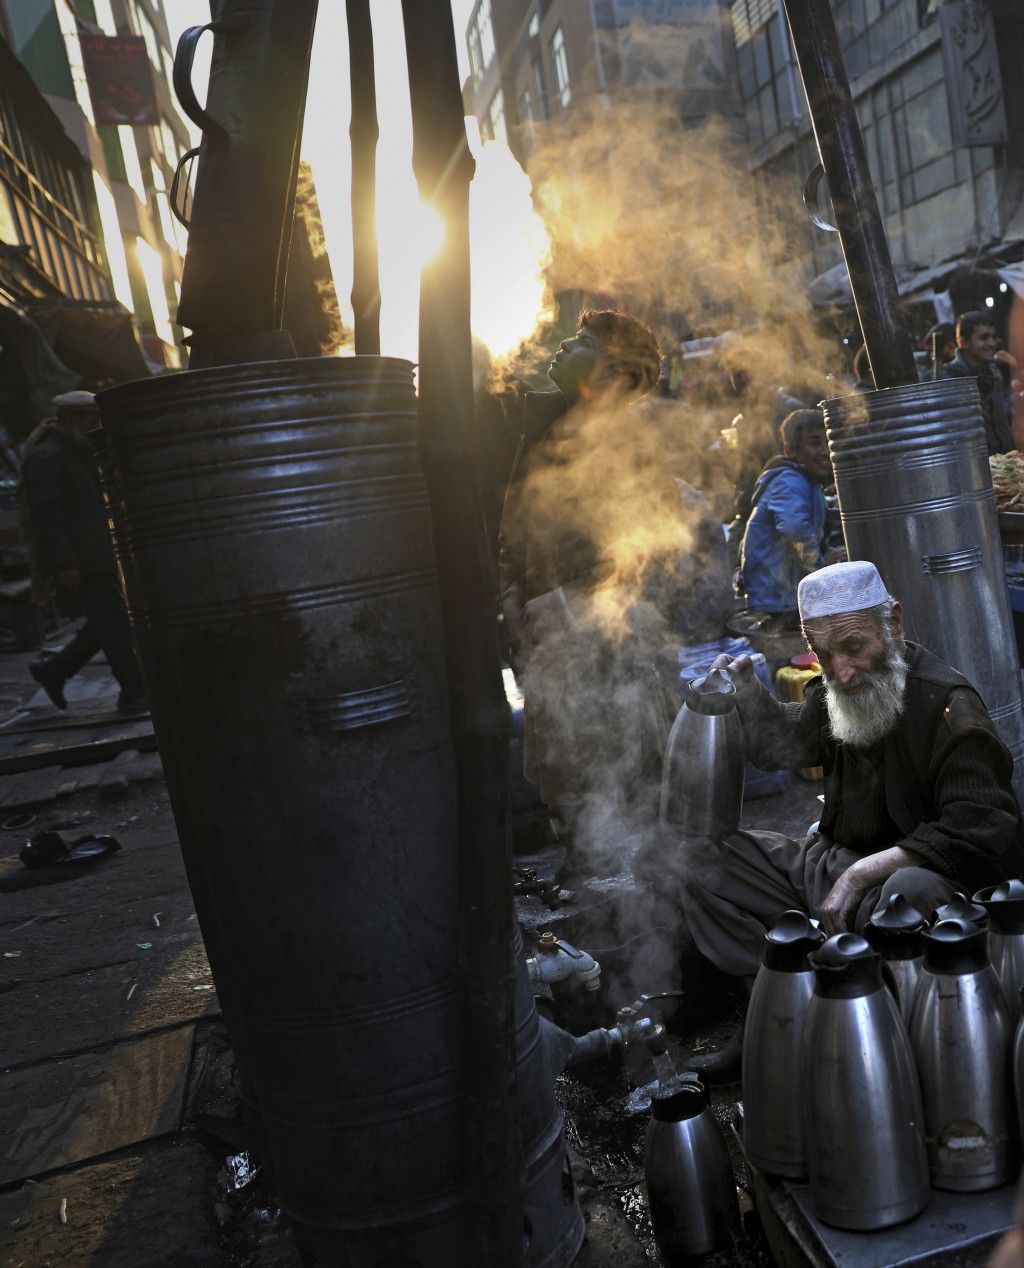 Afghan tea seller Farooq Shah, center, fills kettles with tea for customers at a market place in Kabul, Afghanistan, Wednesday, Dec. 4, 2019. (AP Phot...